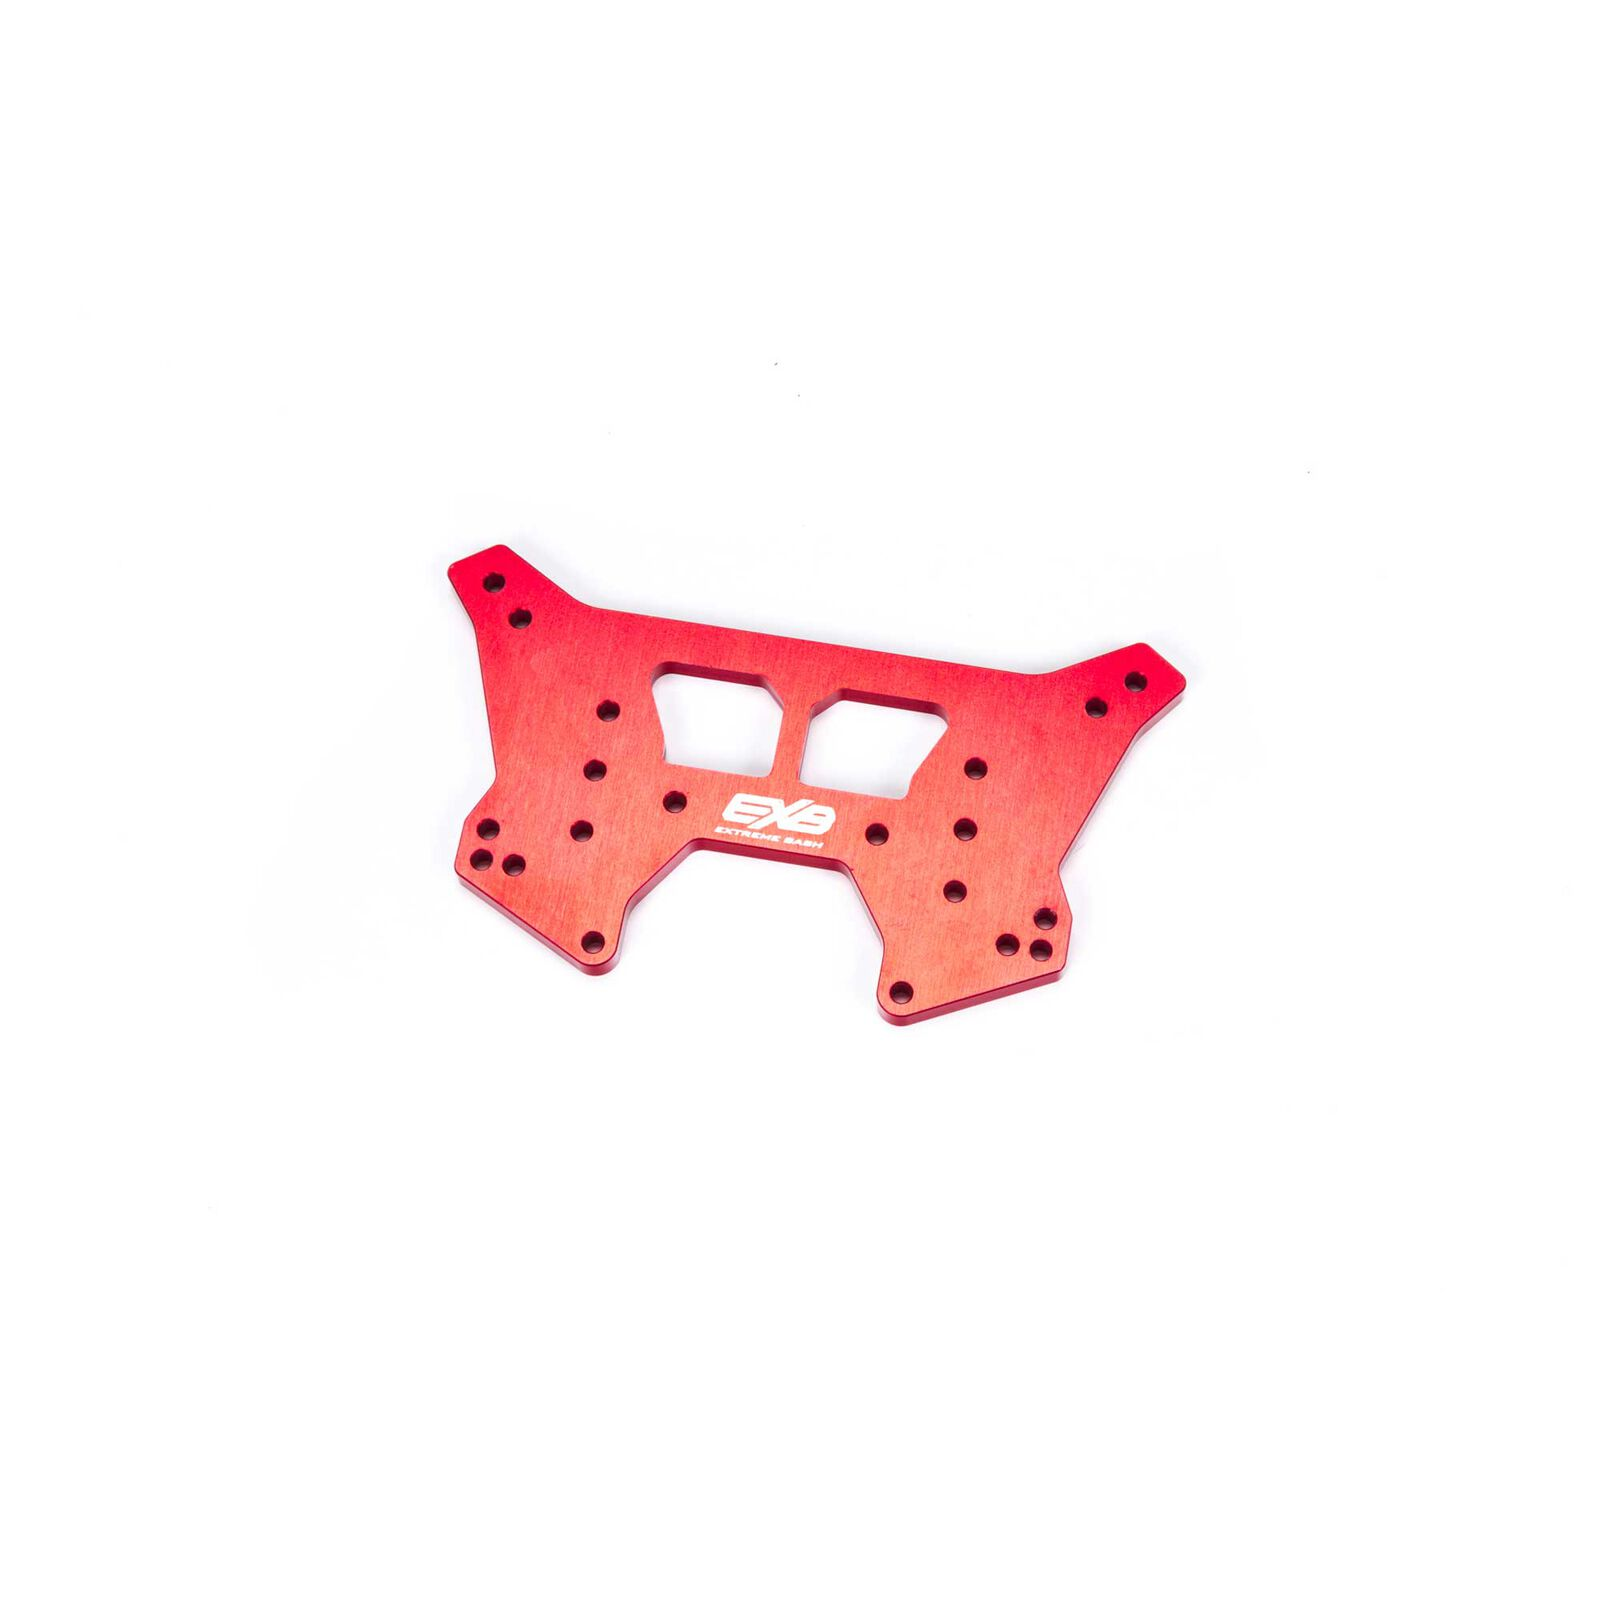 Rear Aluminum Shock Tower CNC 7075 T6 RS, Red: EXB